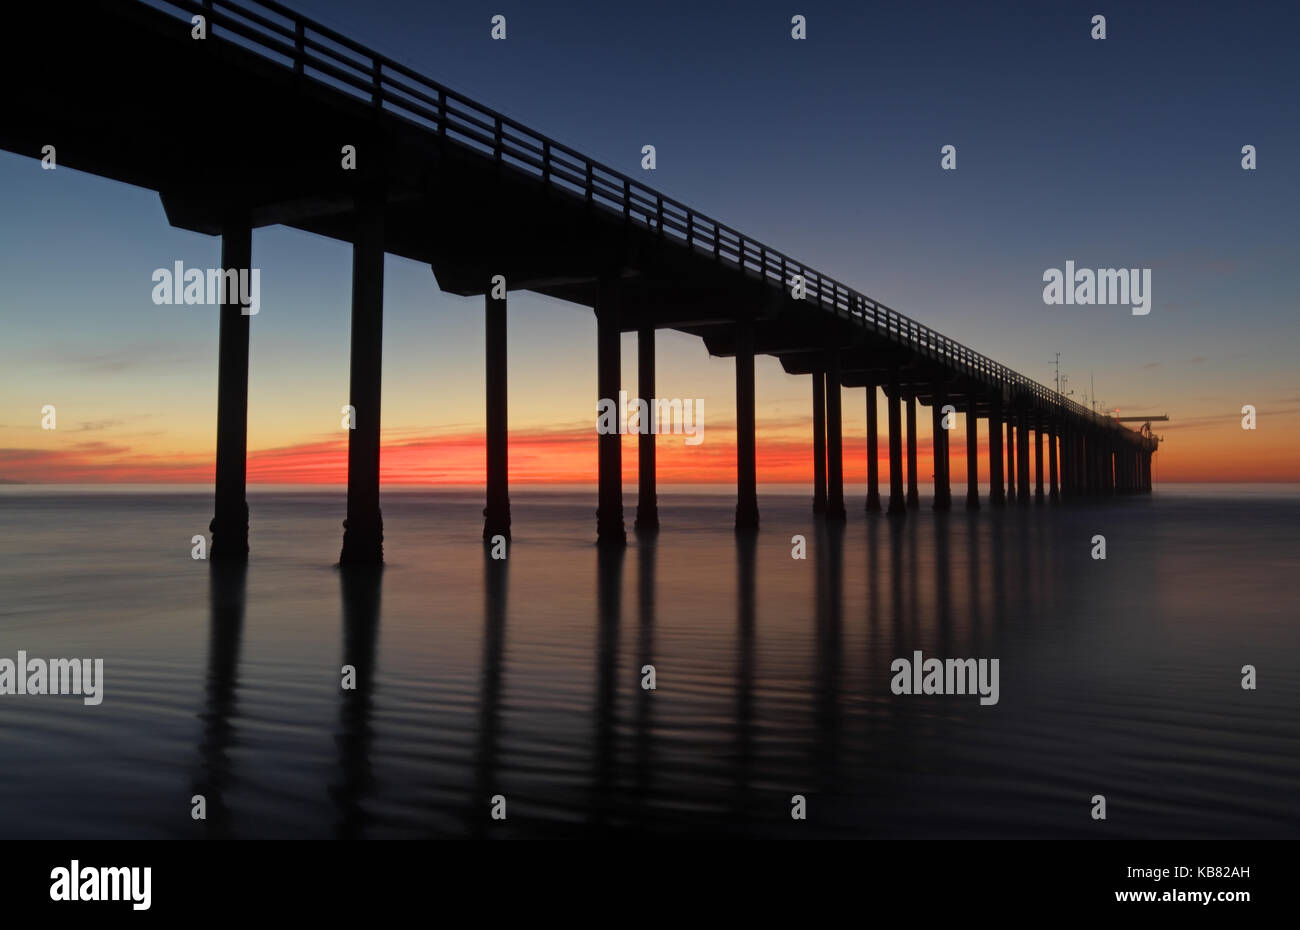 A horizontal seascape of the Scripps Pier in La Jolla, California at one of San Diego's beaches with a colorful - Stock Image